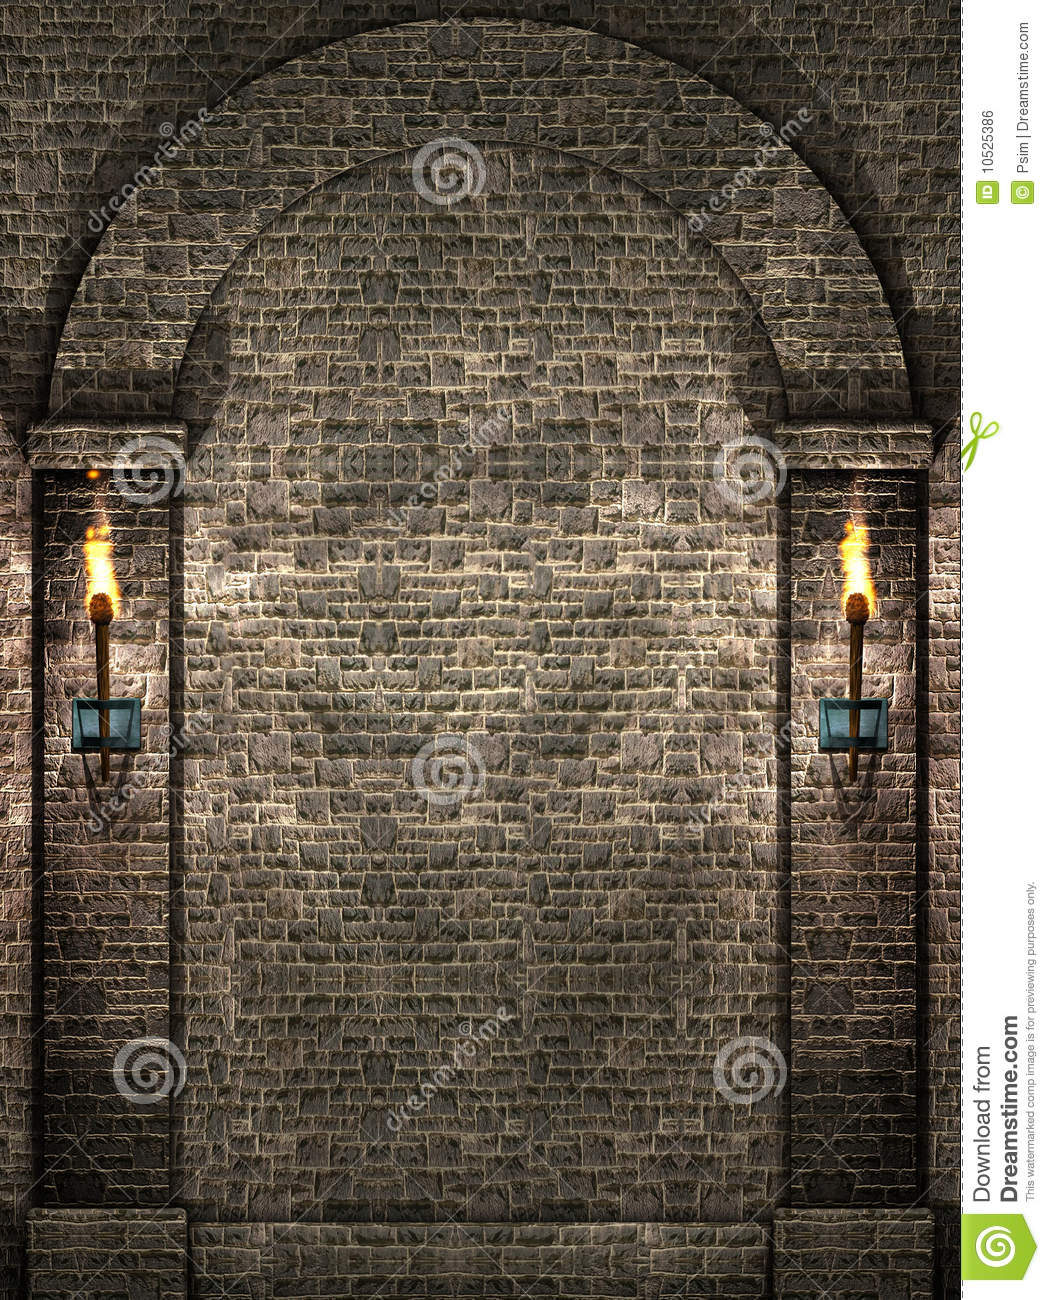 chair design iron dx racing stone wall with torches royalty free stock image - image: 10525386